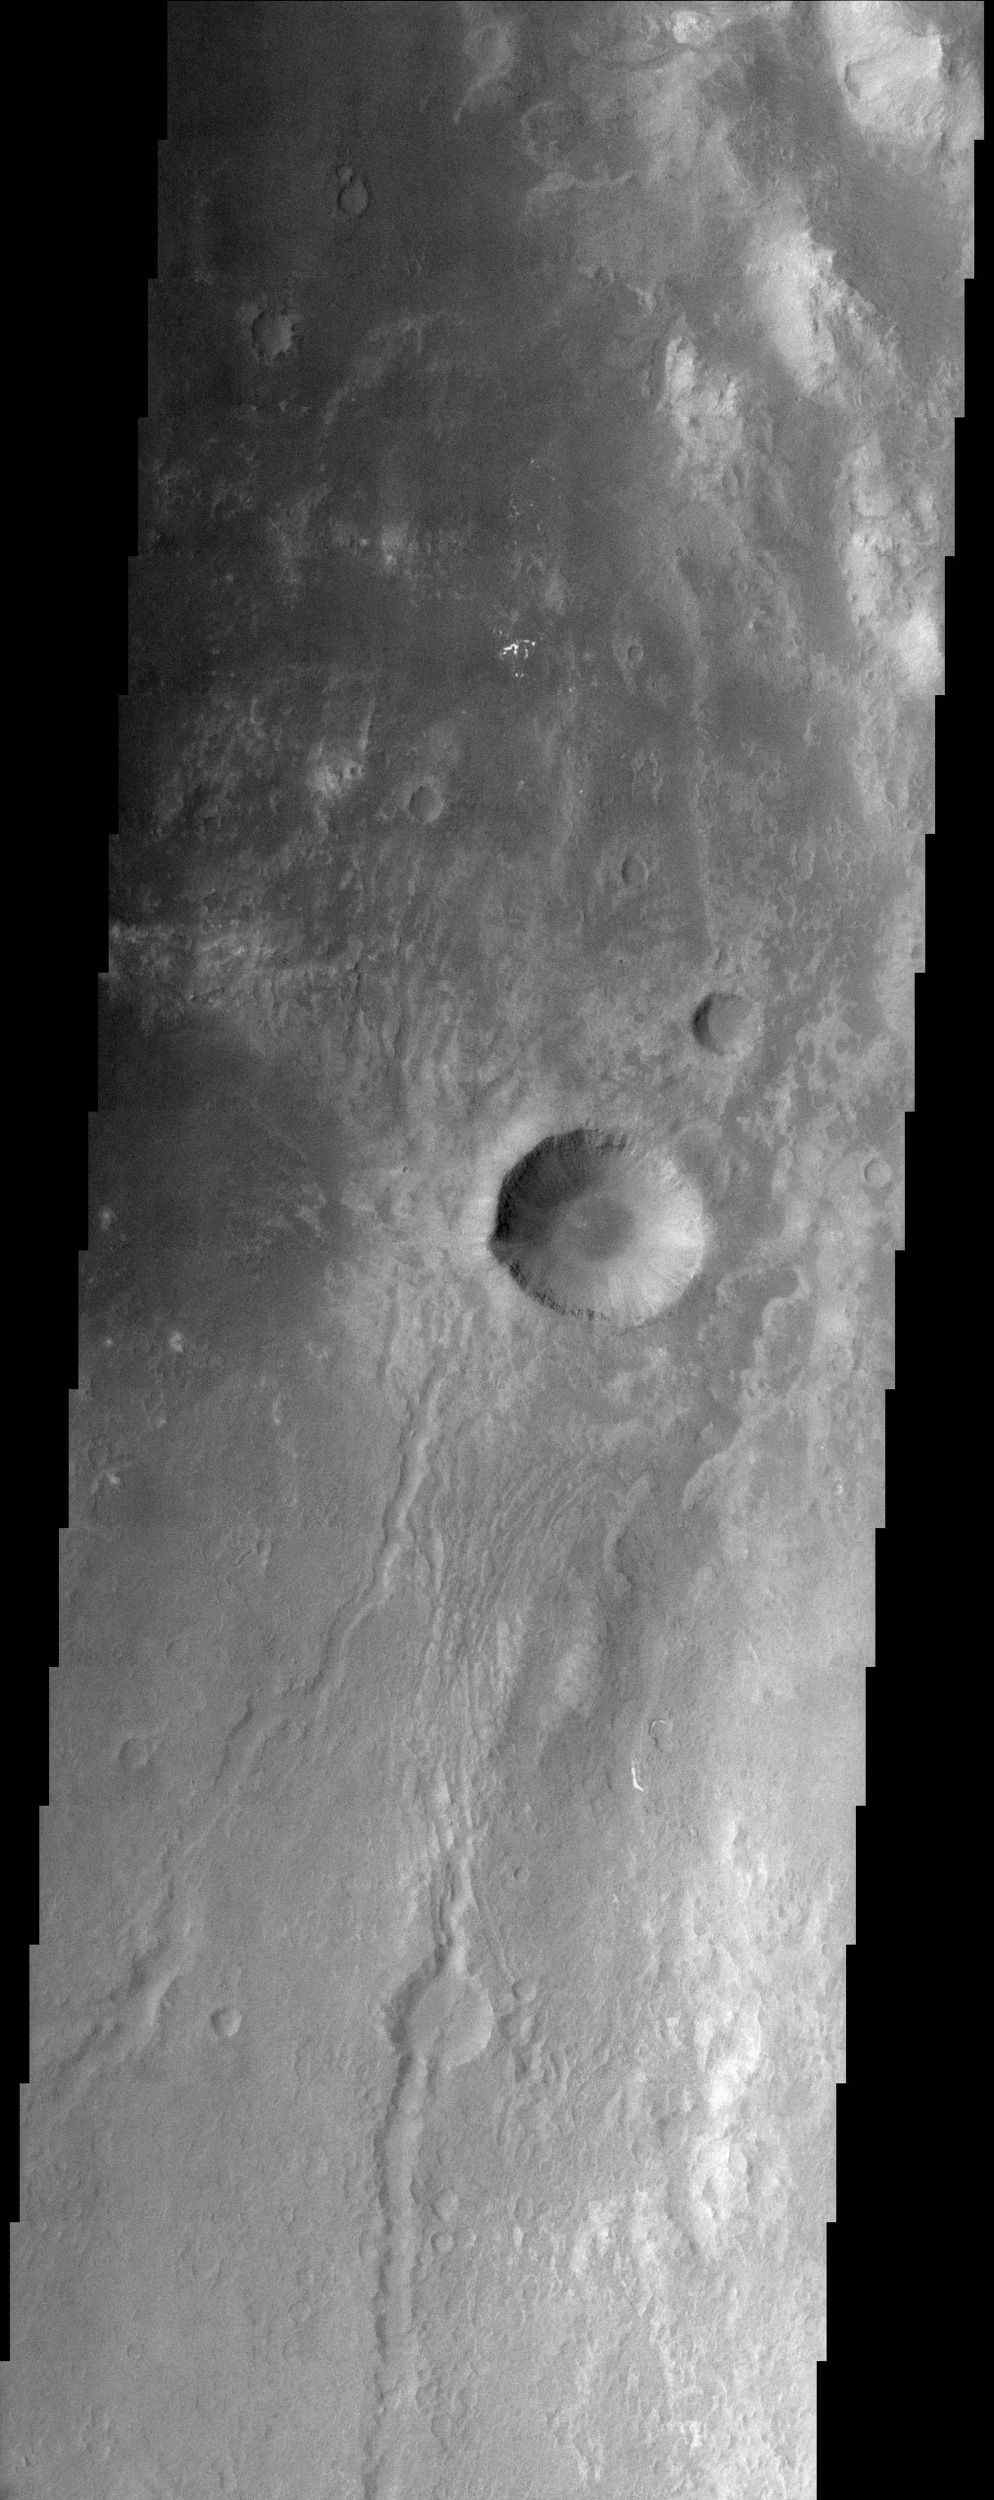 The eastern floor of Holden Crater, which is located in region of the southern hemisphere called Noachis Terra and is 154 km in diameter, is seen in this image from NASA's Mars Odyssey spacecraft.